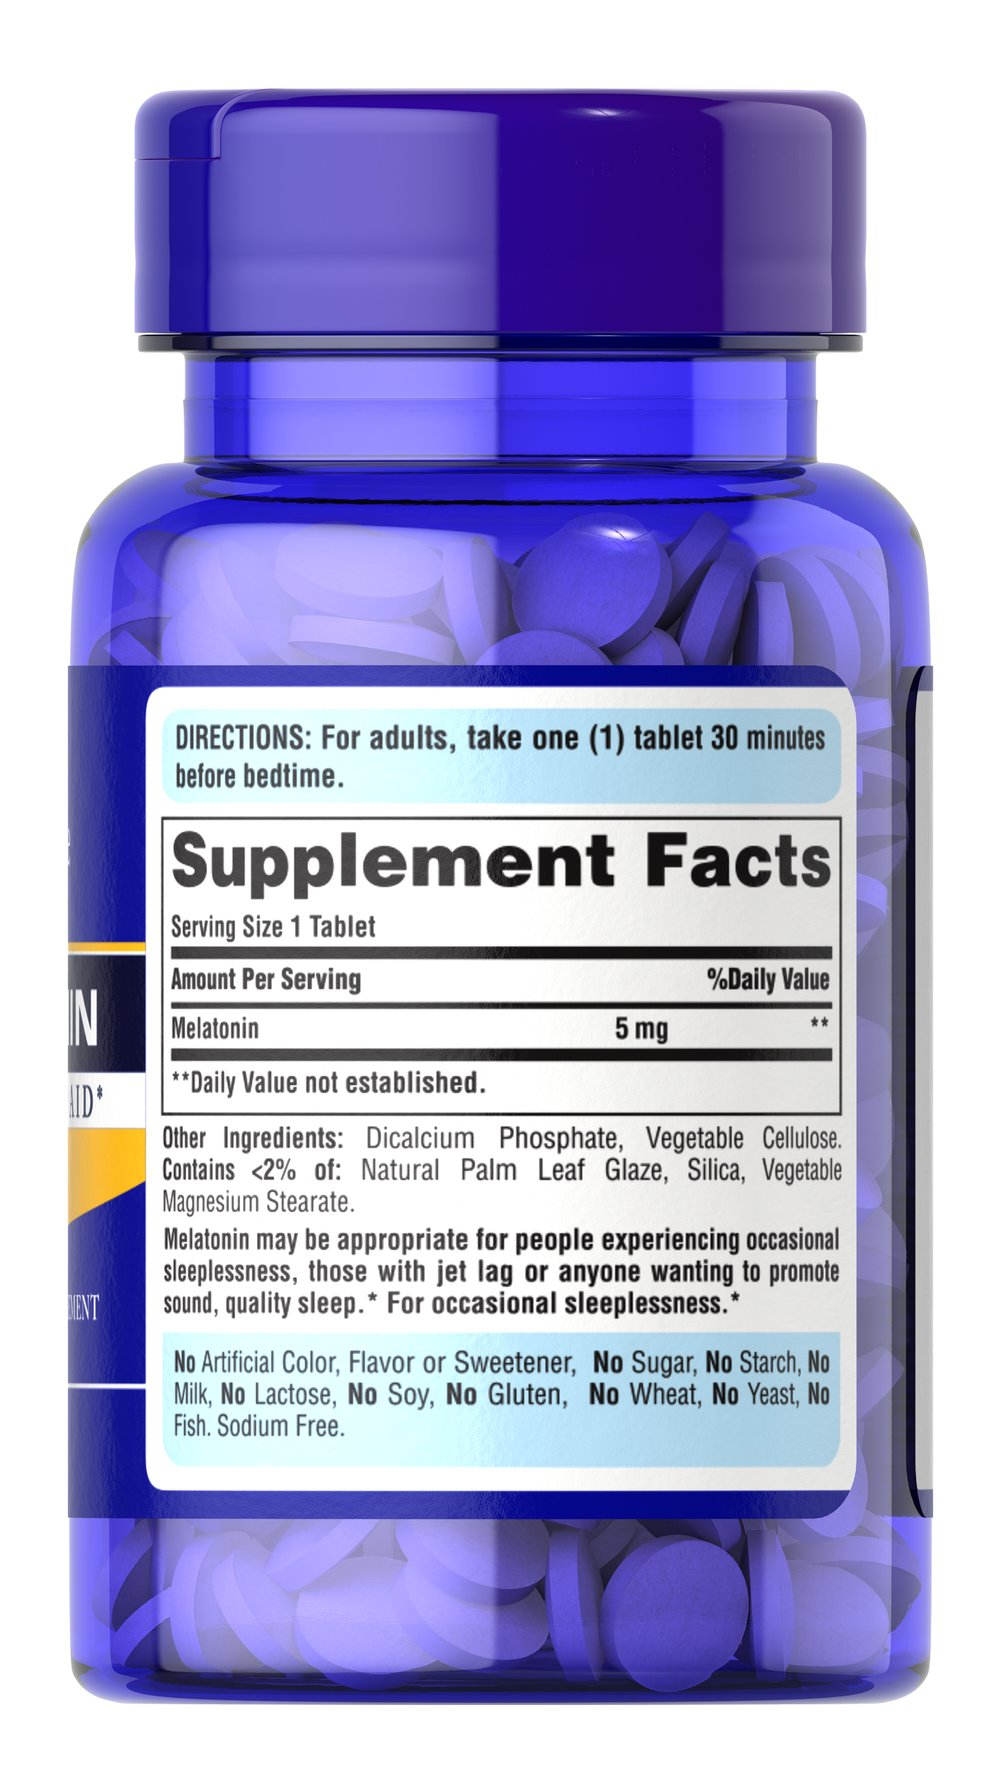 Extra Strength Melatonin 5 mg Thumbnail Alternate Bottle View